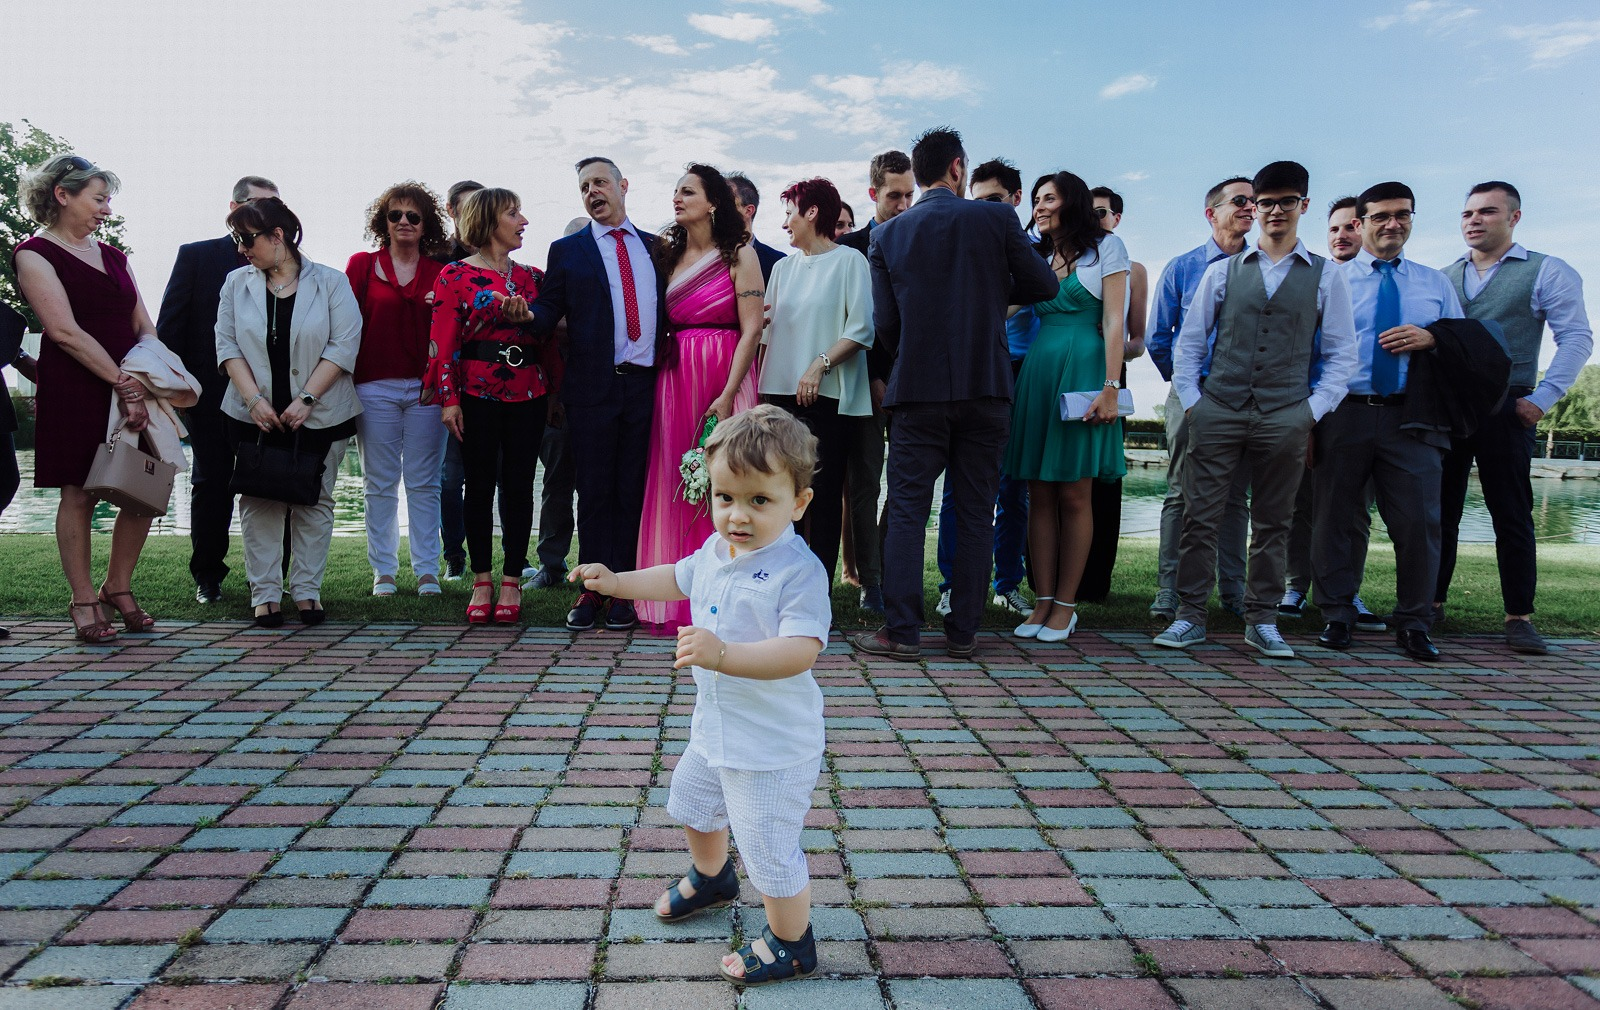 wedding-italy-baby-kids-fun-walk-people-family-shoot-moment-sky